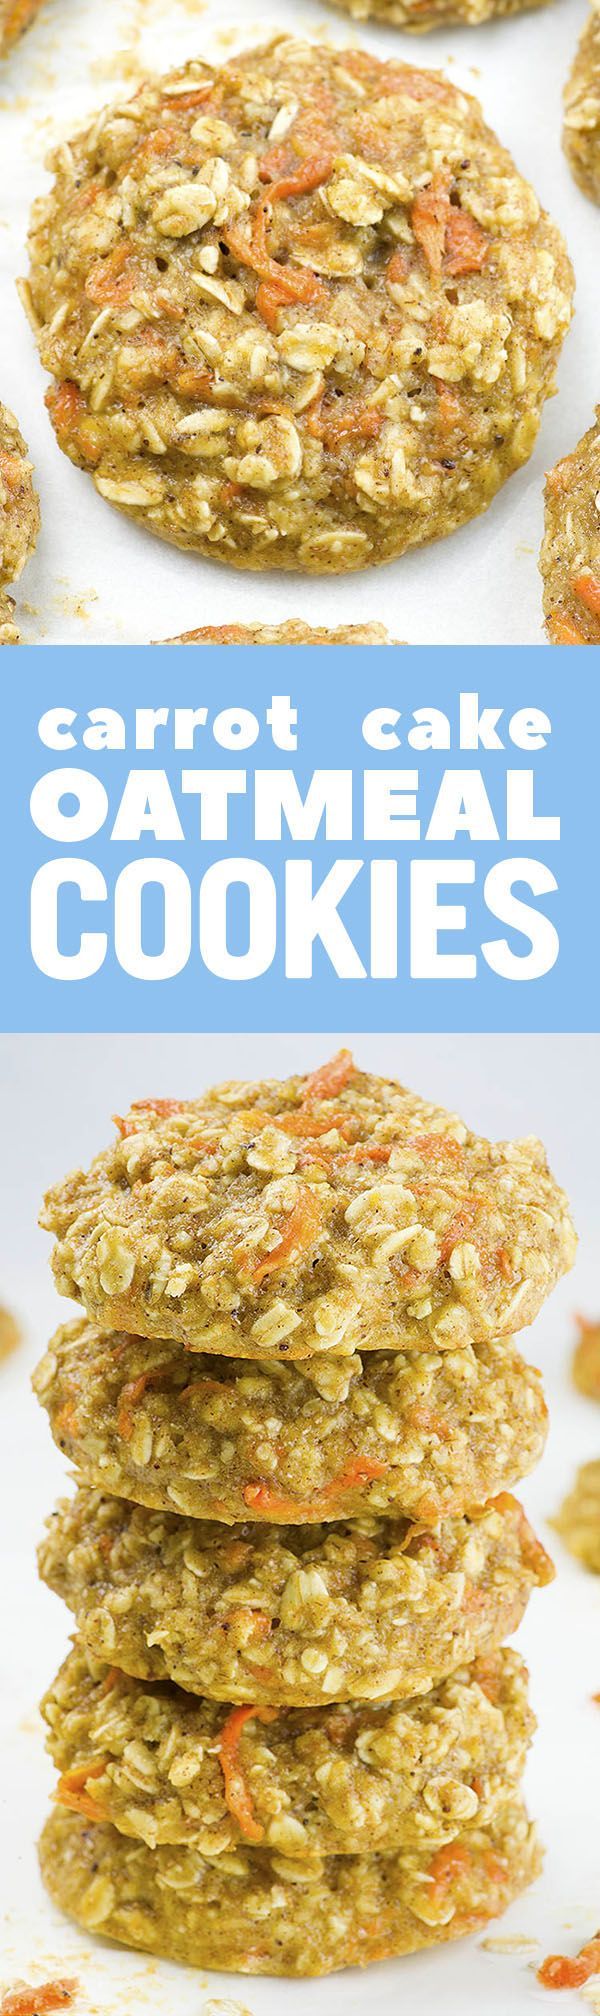 These skinny Carrot Cake Oatmeal Cookies are easy, yummy and healthy recipe that you must try it. It is perfect clean eating breakfast idea!